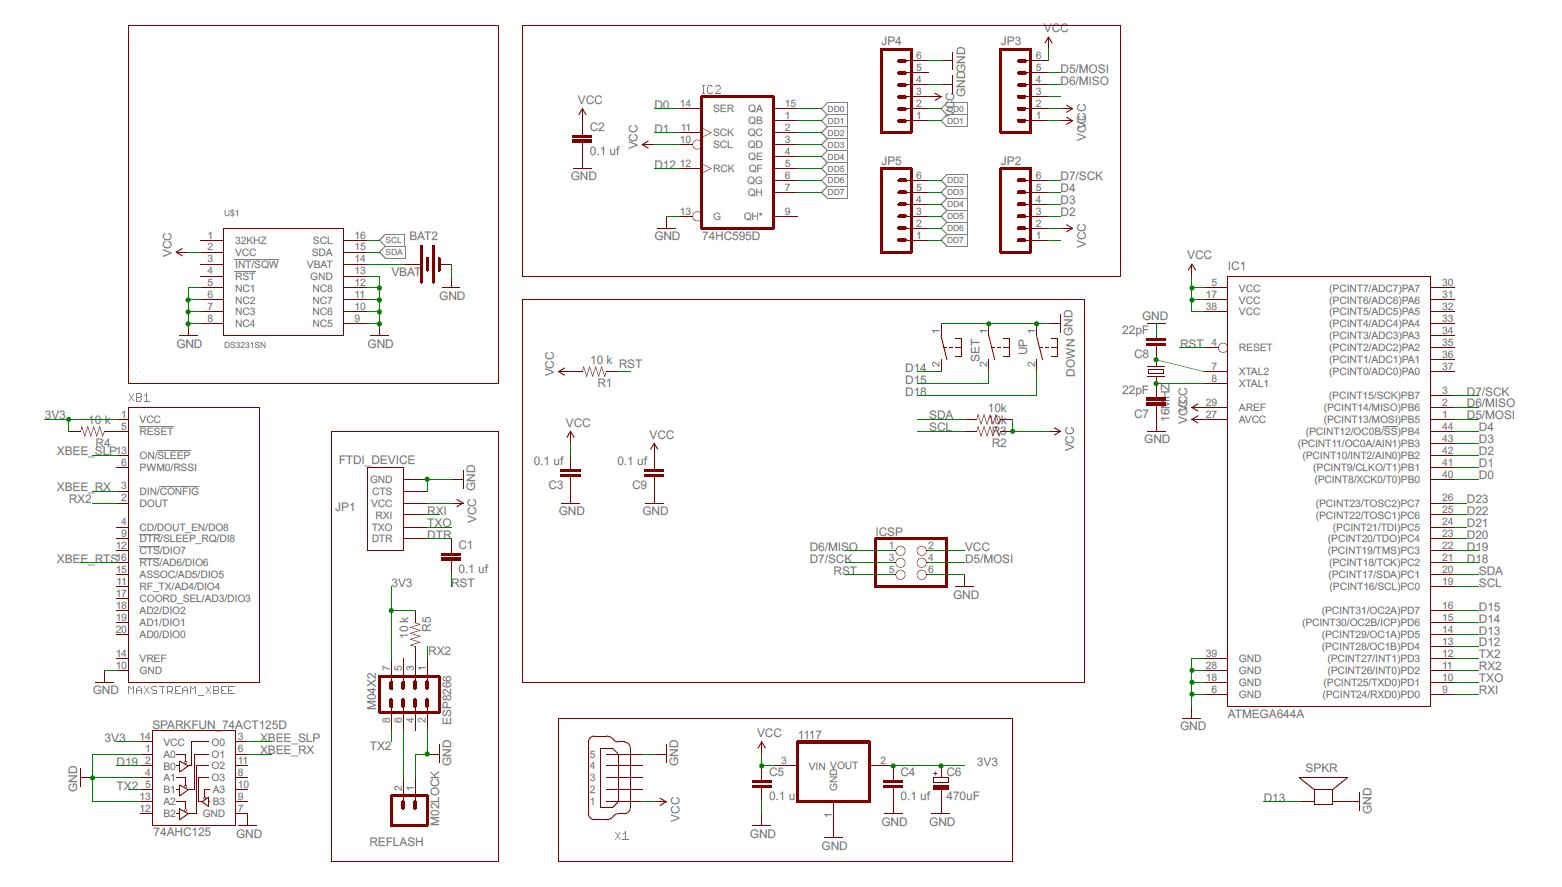 Posts With Software Label Scr Circuit Design Http Homemadecircuitsandschematicsblogspotcom Although Functional The Board I Designed Is Far From Perfect